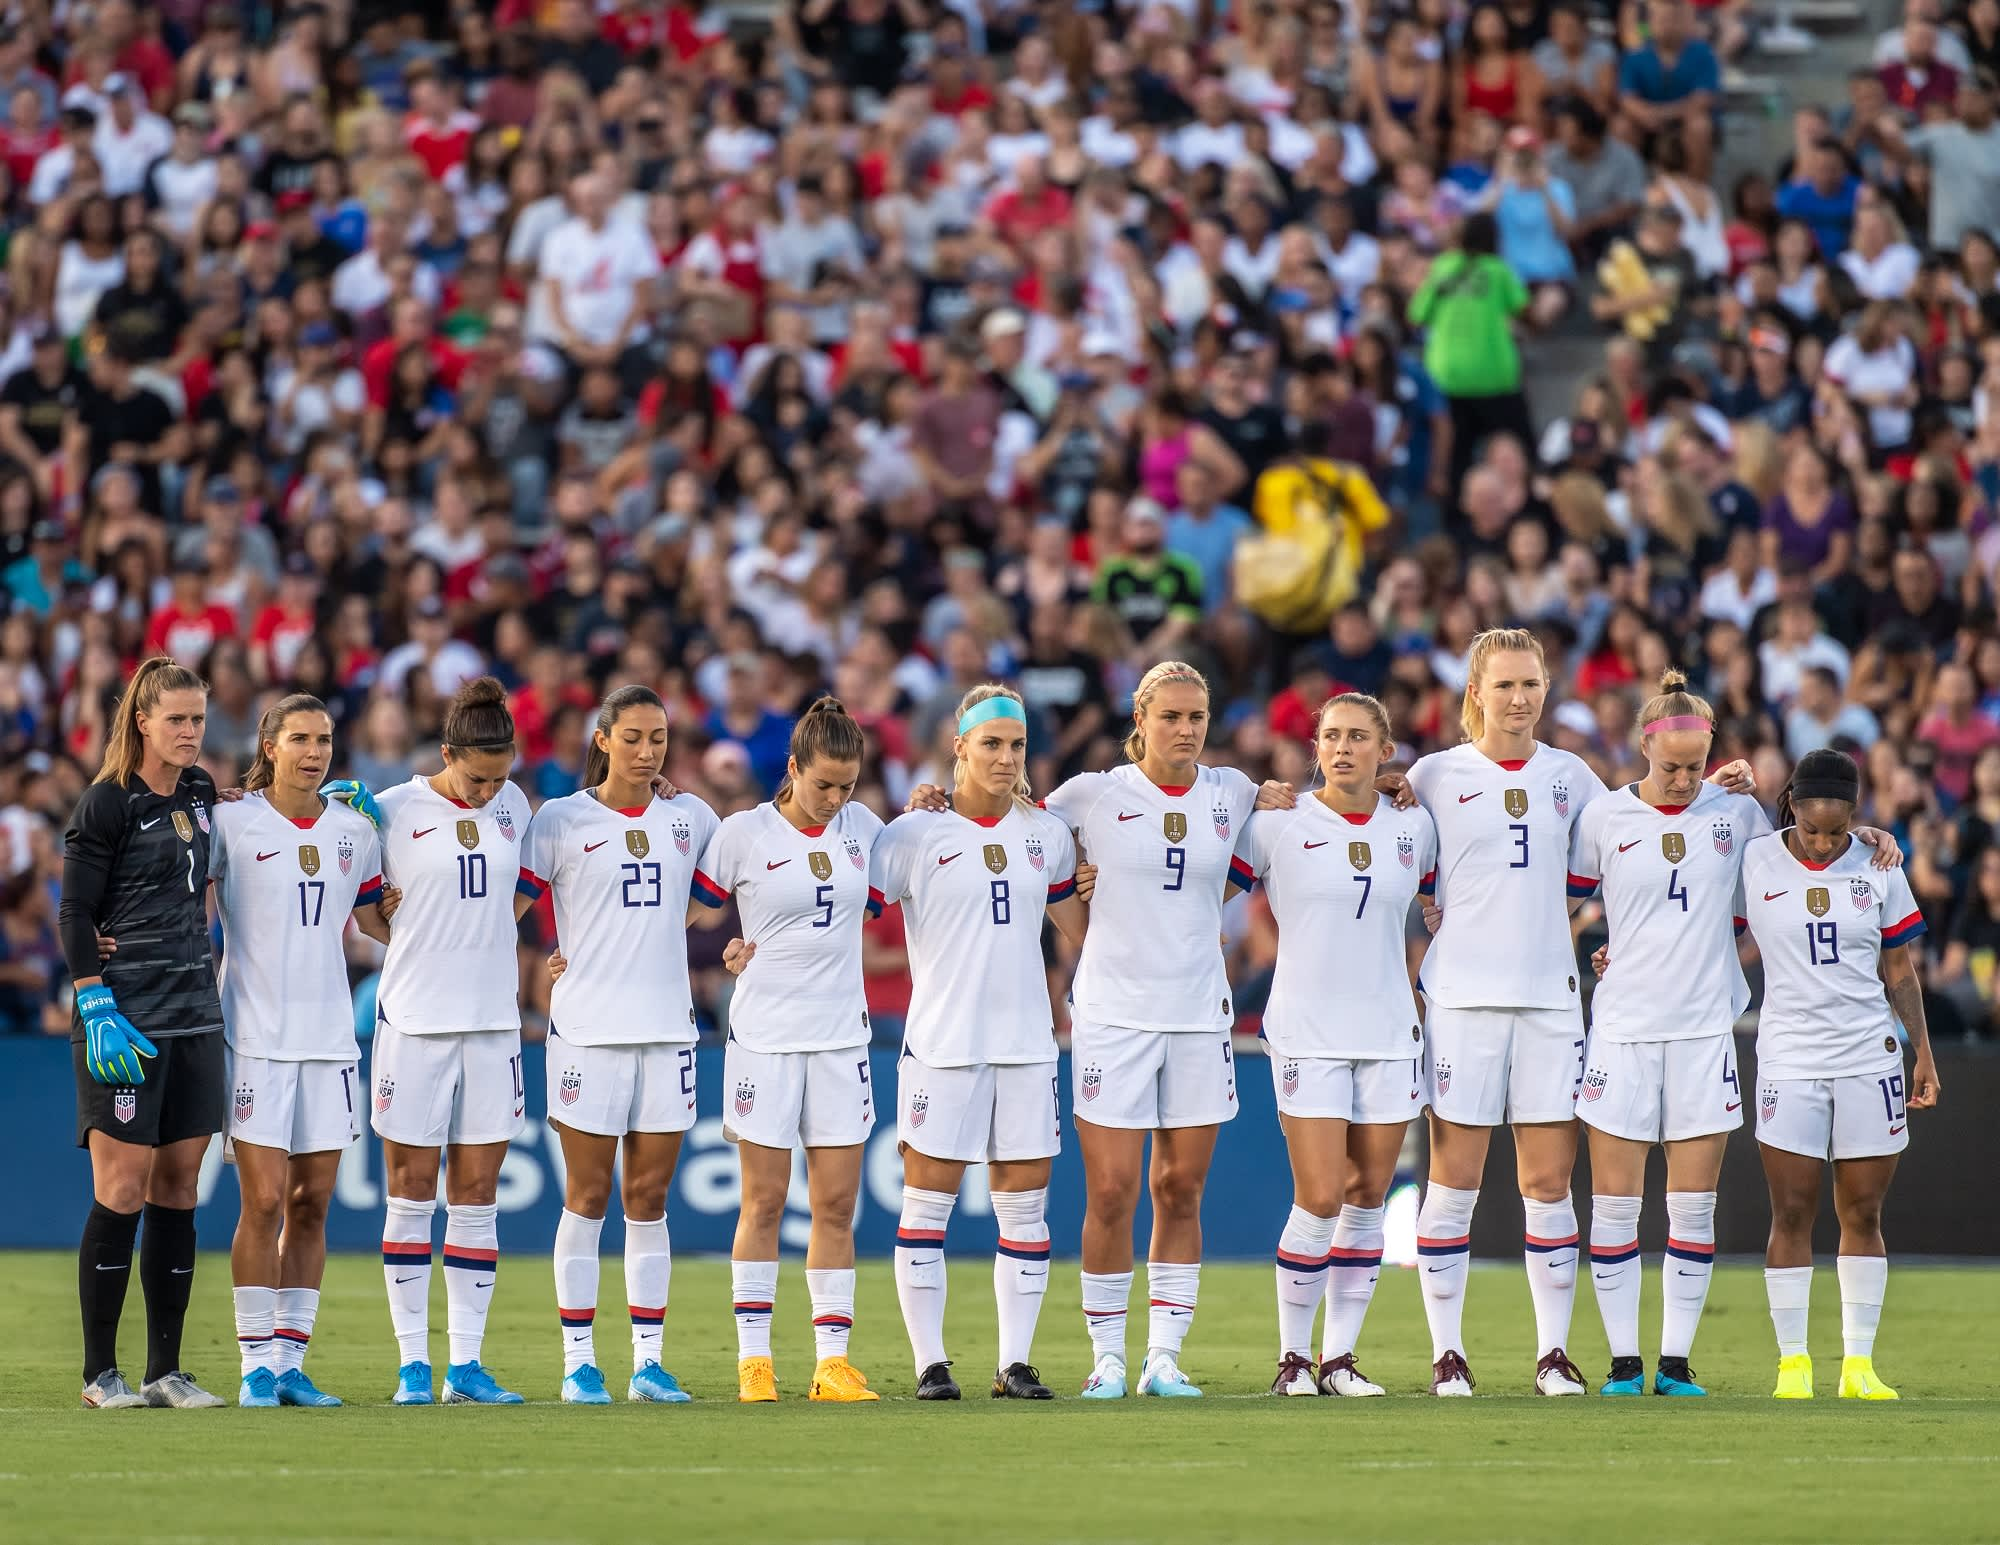 Mediation between US women's team and US Soccer fall apart—now the two sides may face off in court